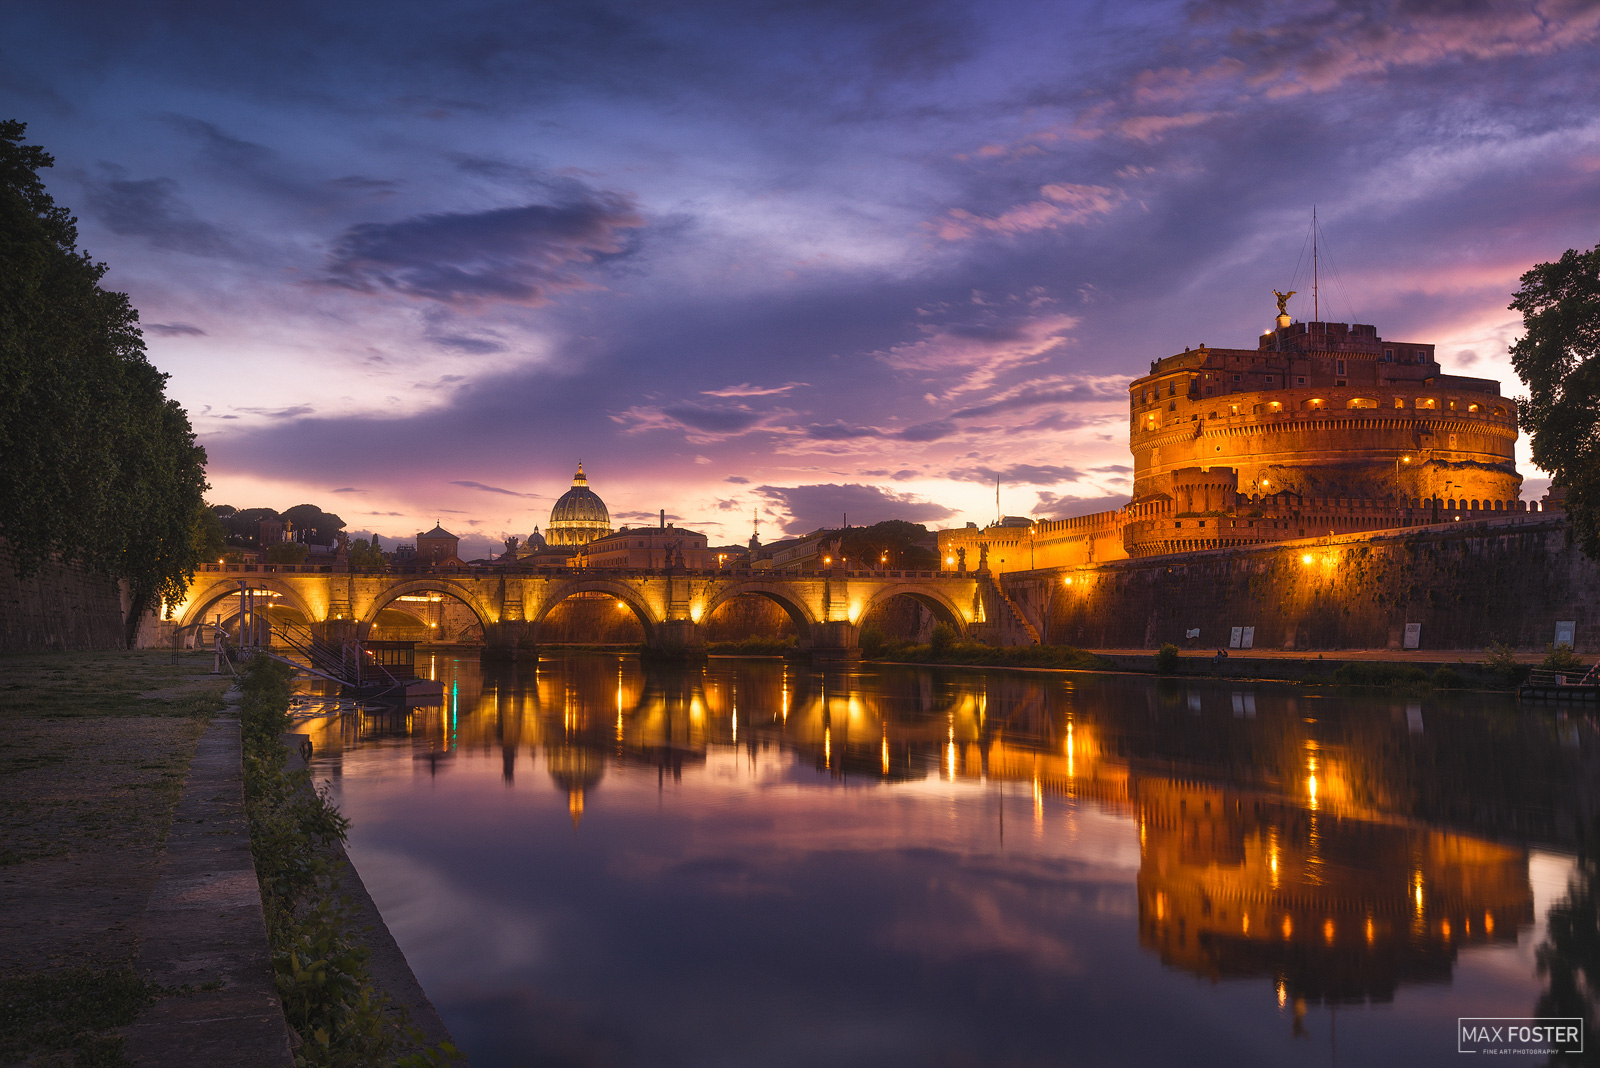 Castel Sant'Angelo, Rome, Italy, Mausoleum of Hadrian, fortress, castle, Angels & Demons, photo